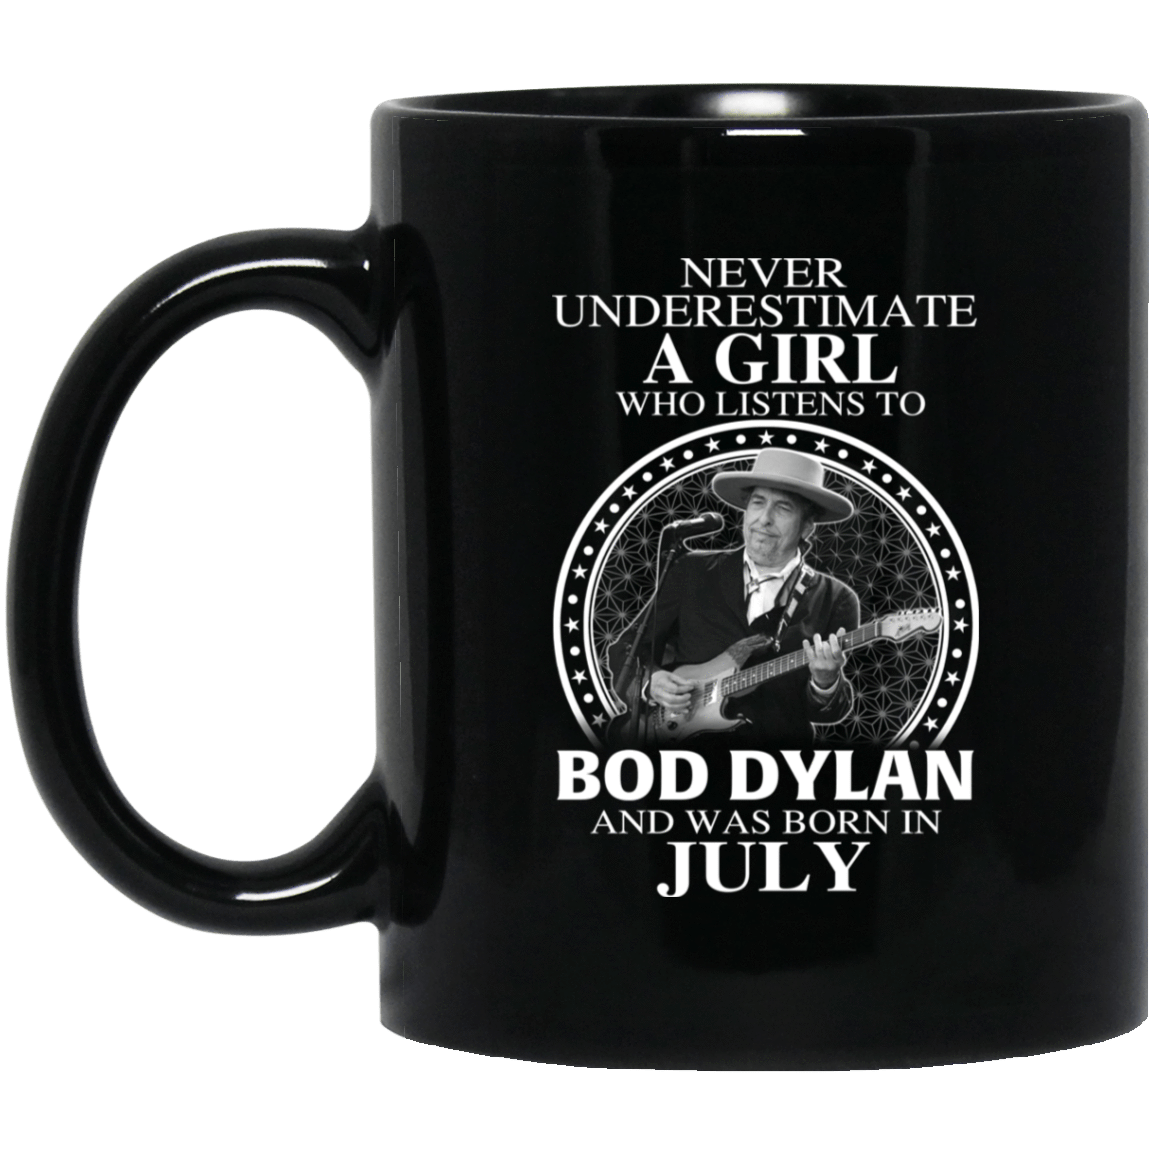 A Girl Who Listens To Bob Dylan And Was Born In July Mug 1065-10181-76153674-49307 - Tee Ript